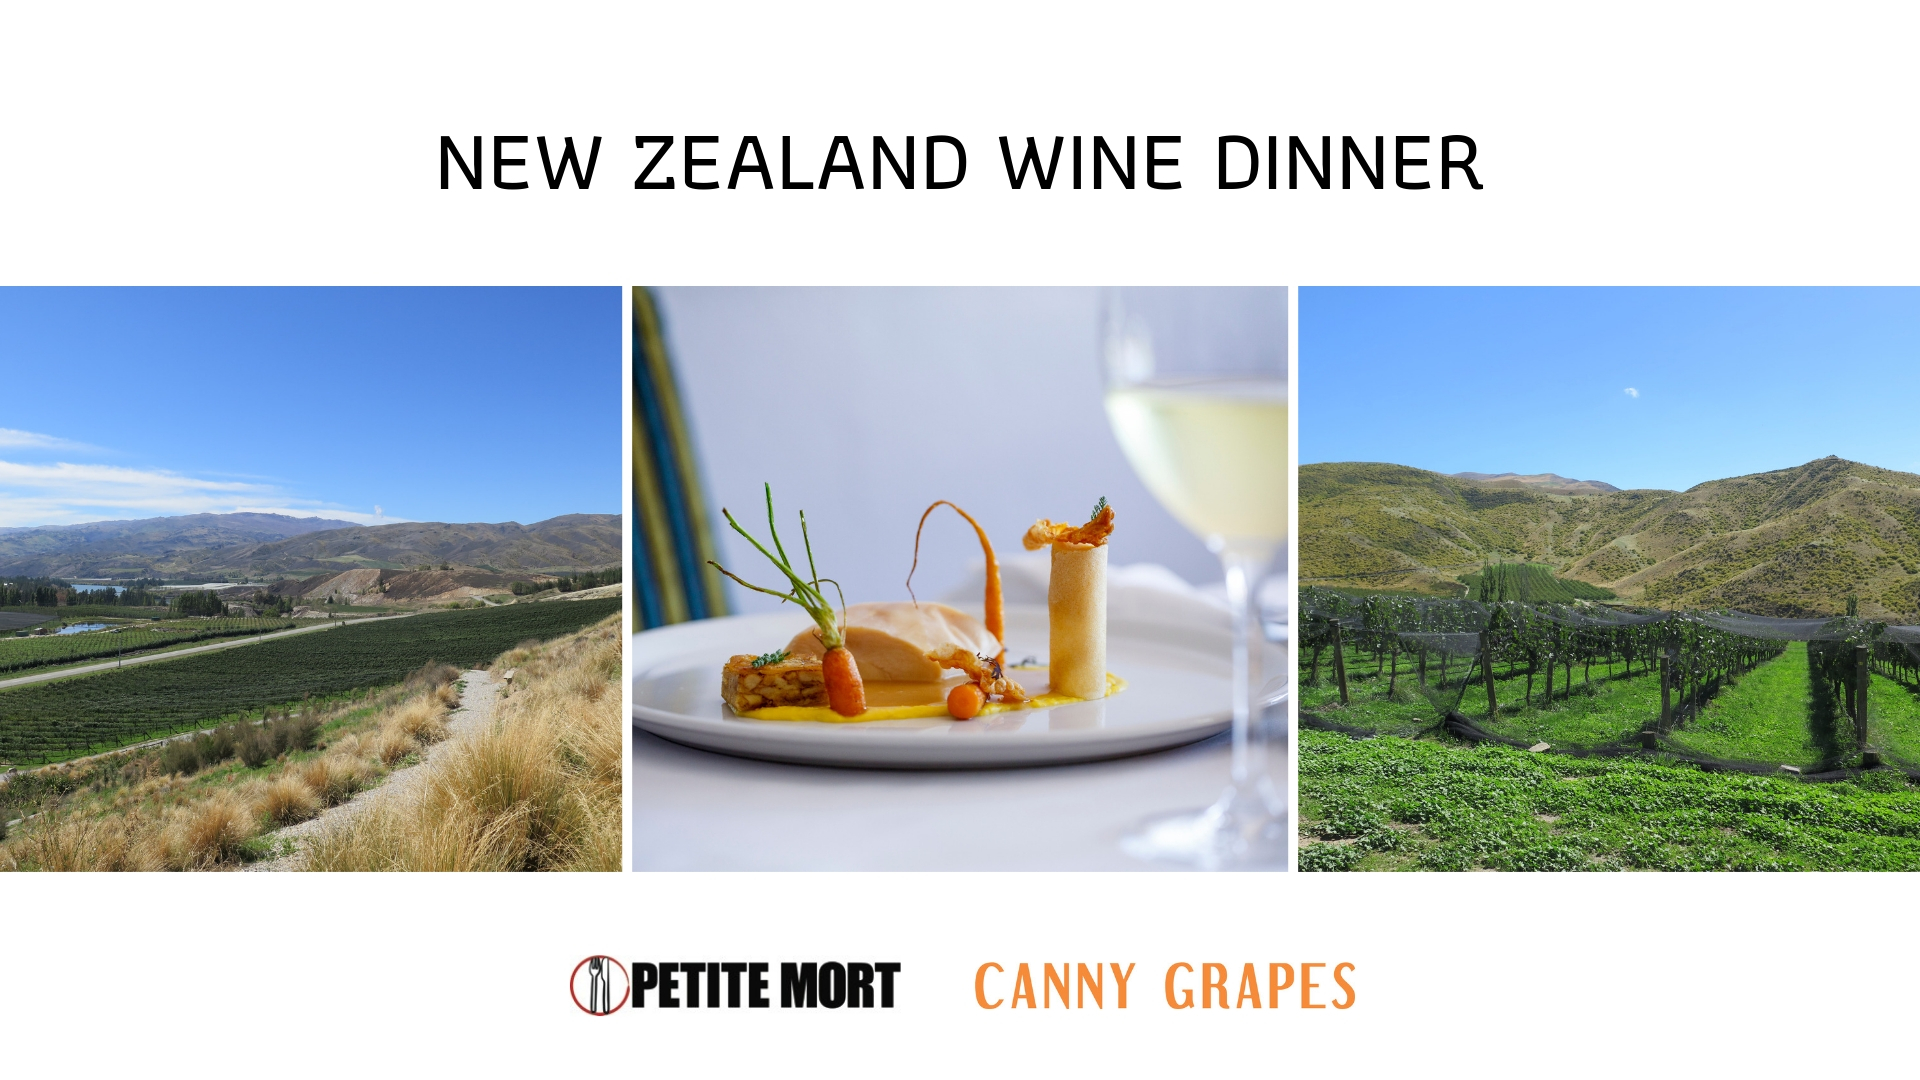 New Zealand Wine Dinner Petite Mort Perth with Anja Lewis from Canny Grapes